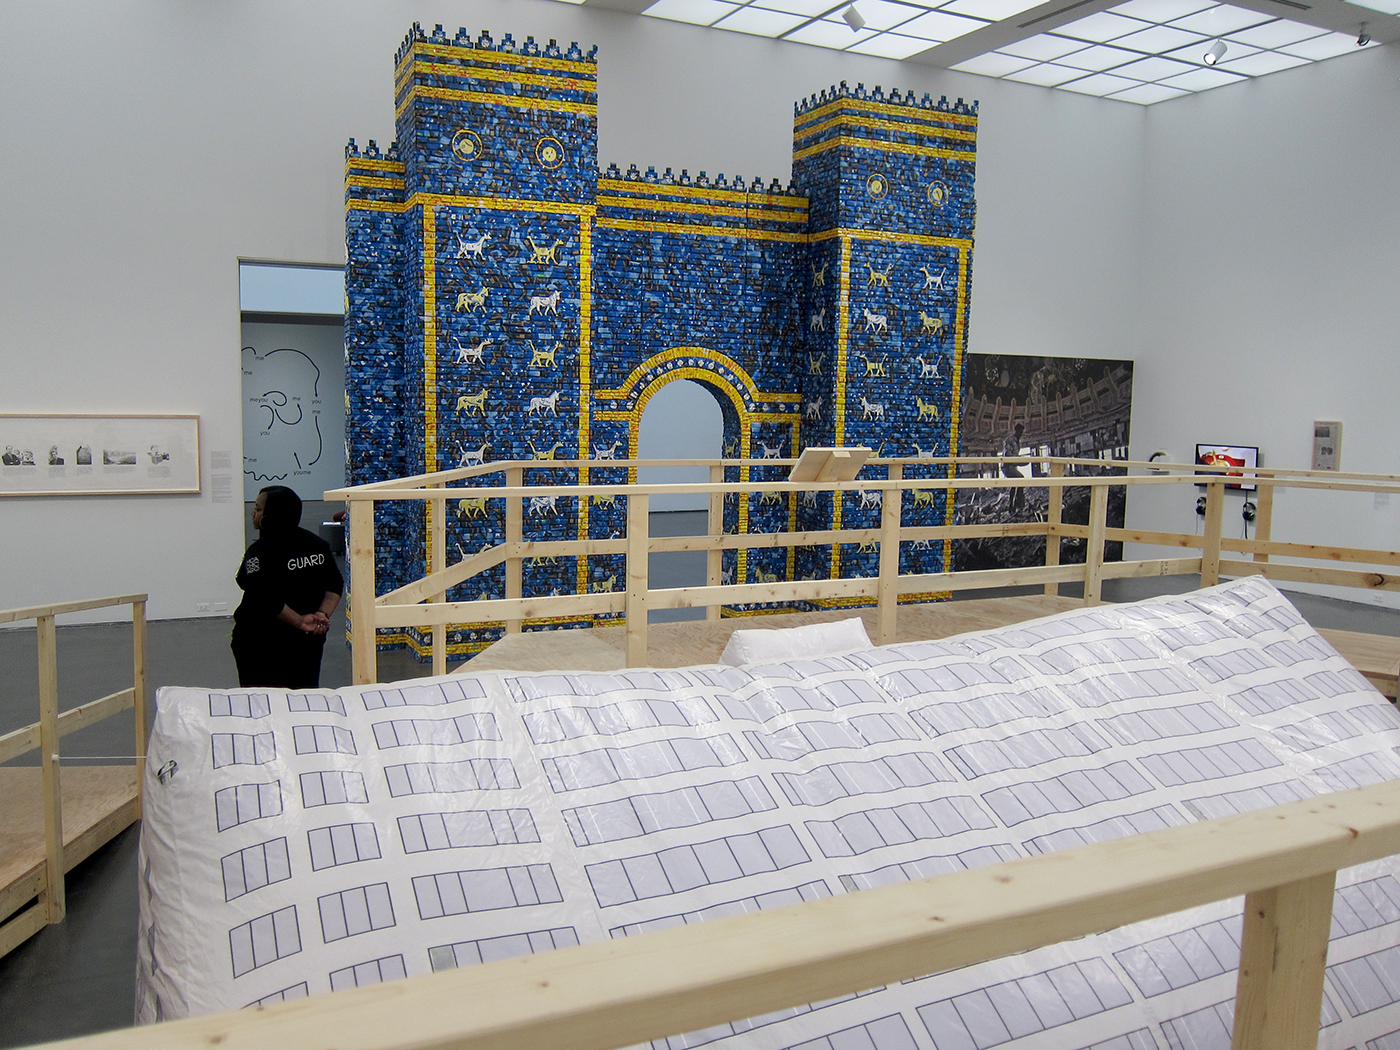 Installation view of  Michael Rakowitz: Backstroke of the West at the Museum of Contemporary Art, Chicago.  Image by Claire Voon for Hyperallergic. Courtesty of Hyperallergic.